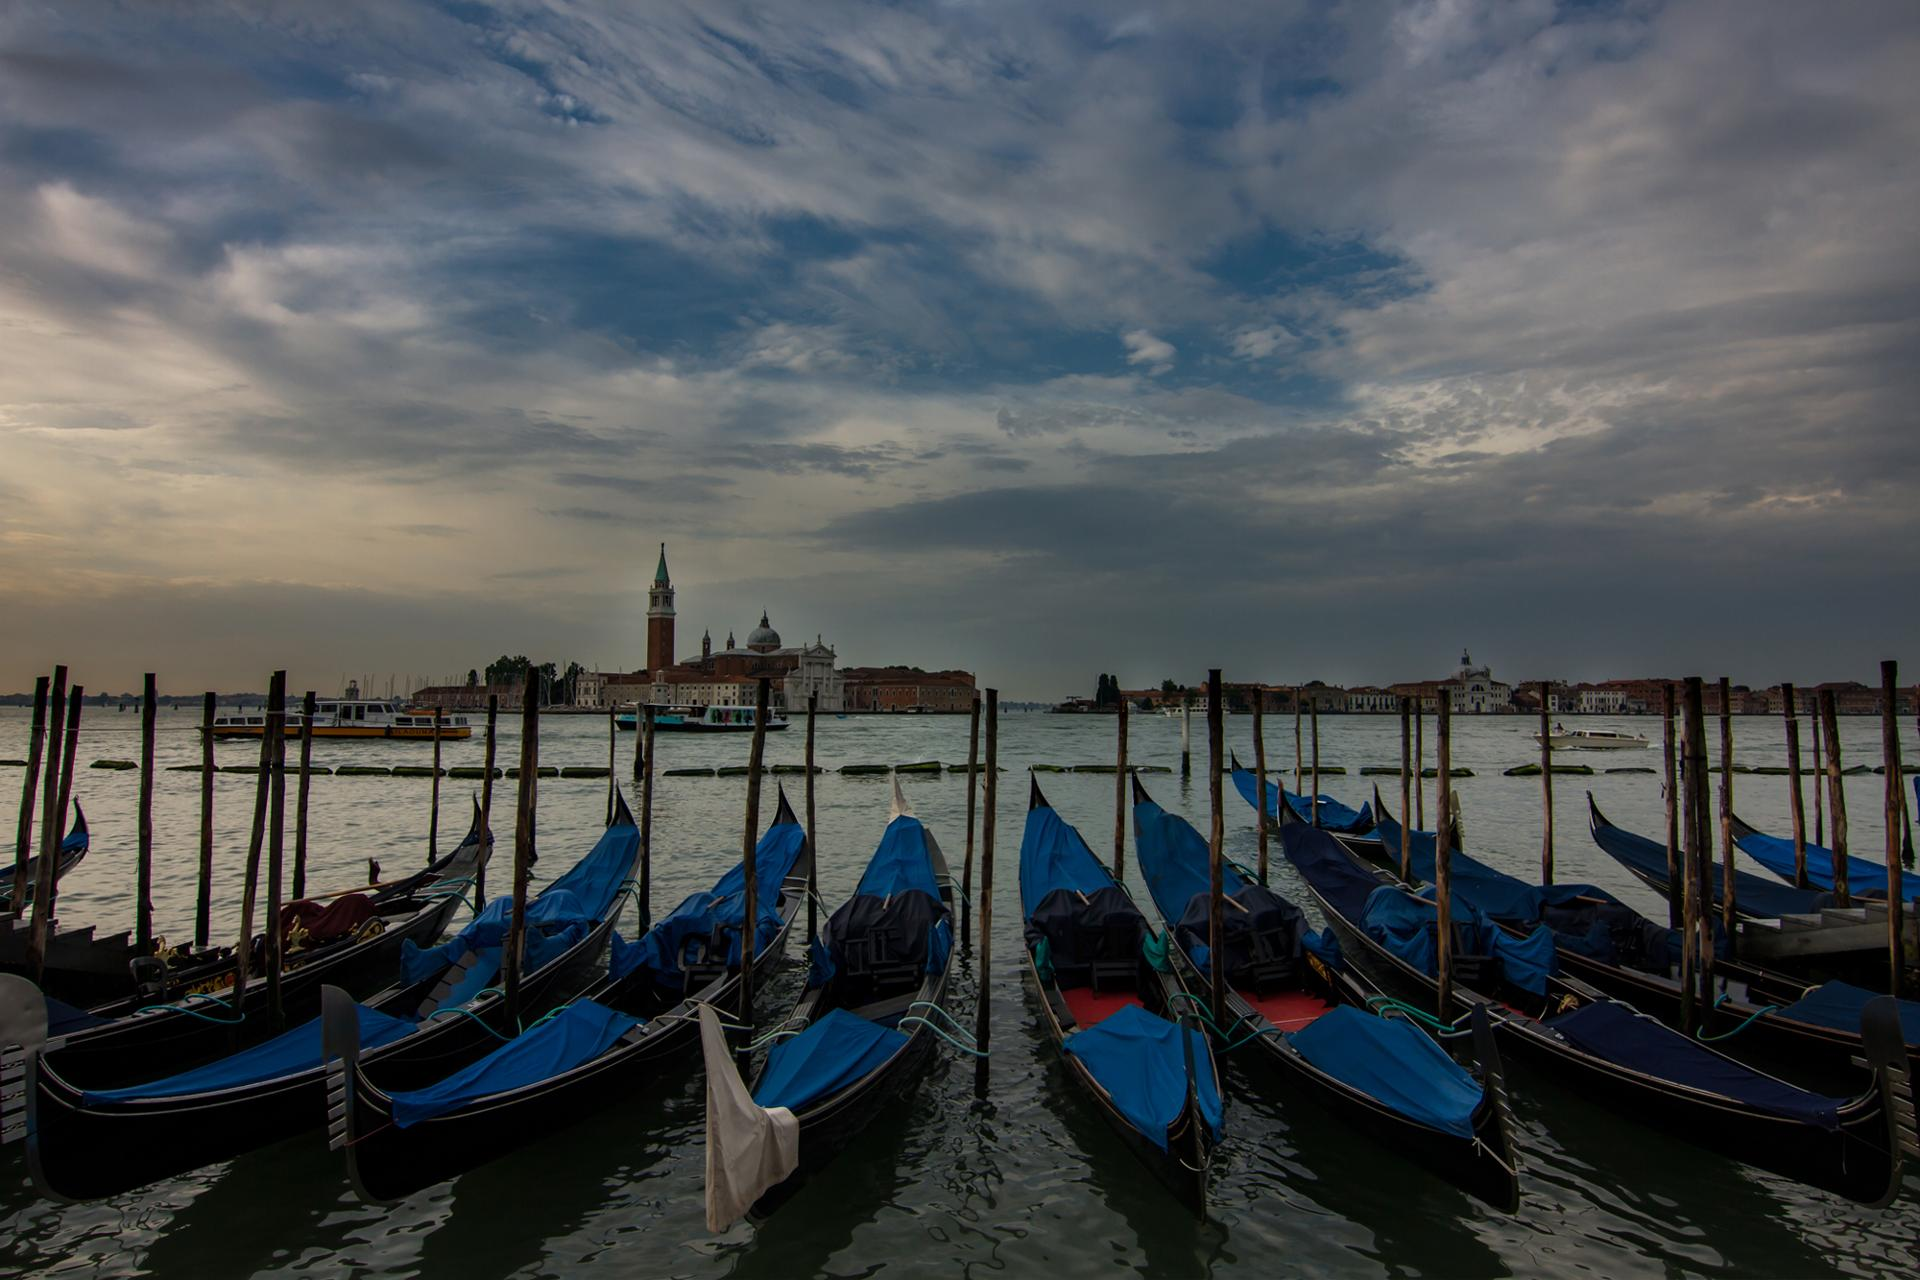 Where are the gondolieri? Venezia by sir20